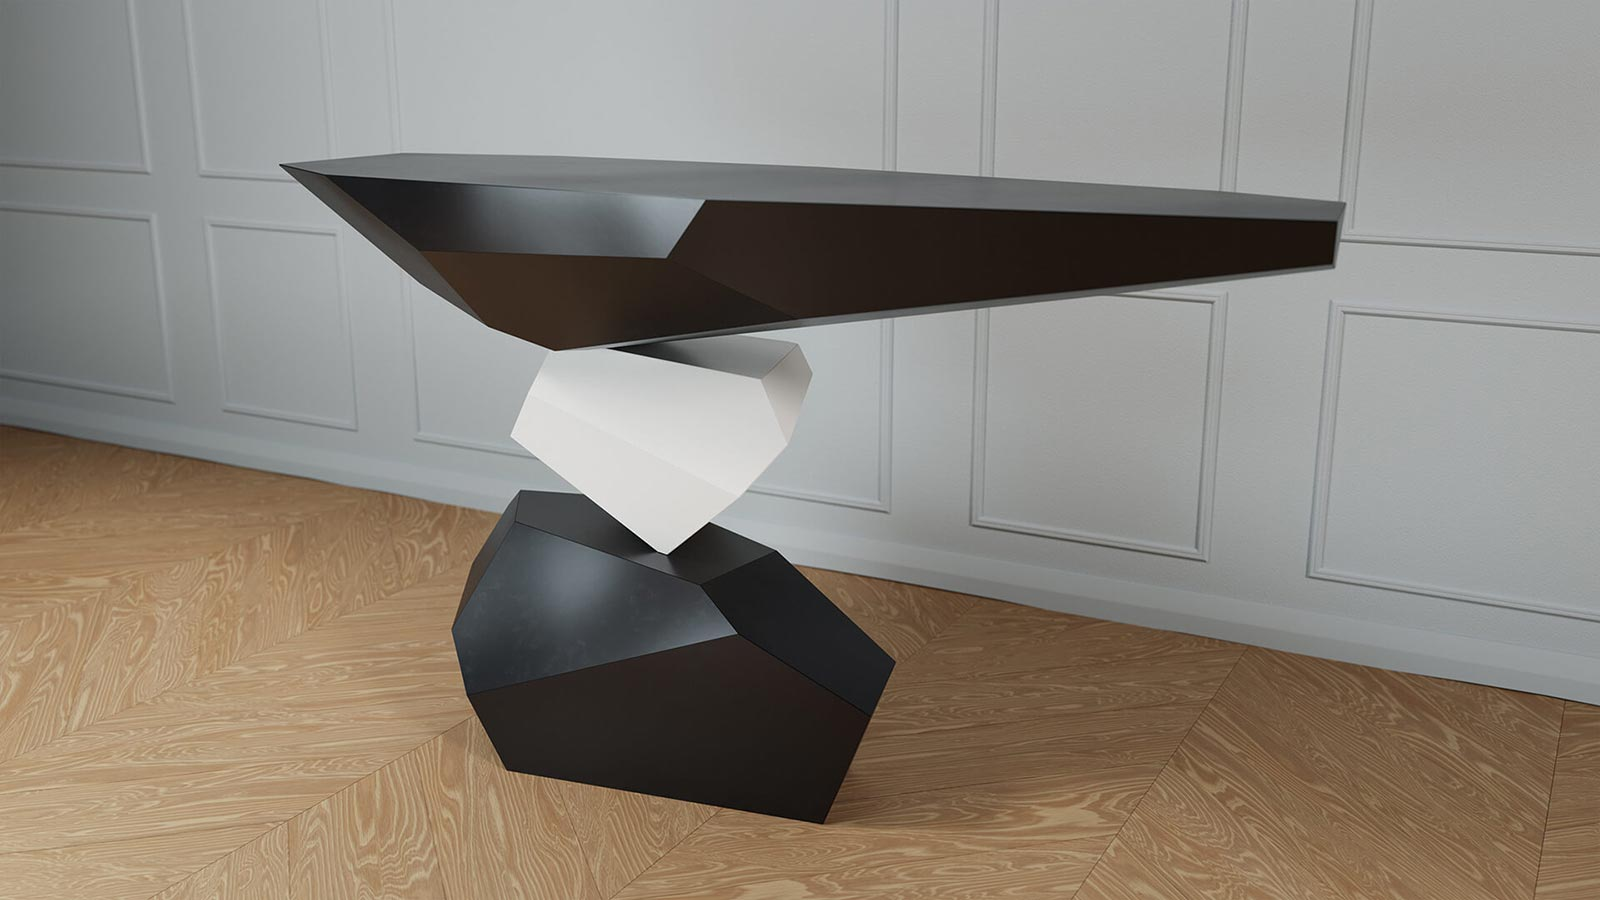 Duffy London's Serenity console table appears to defy gravity